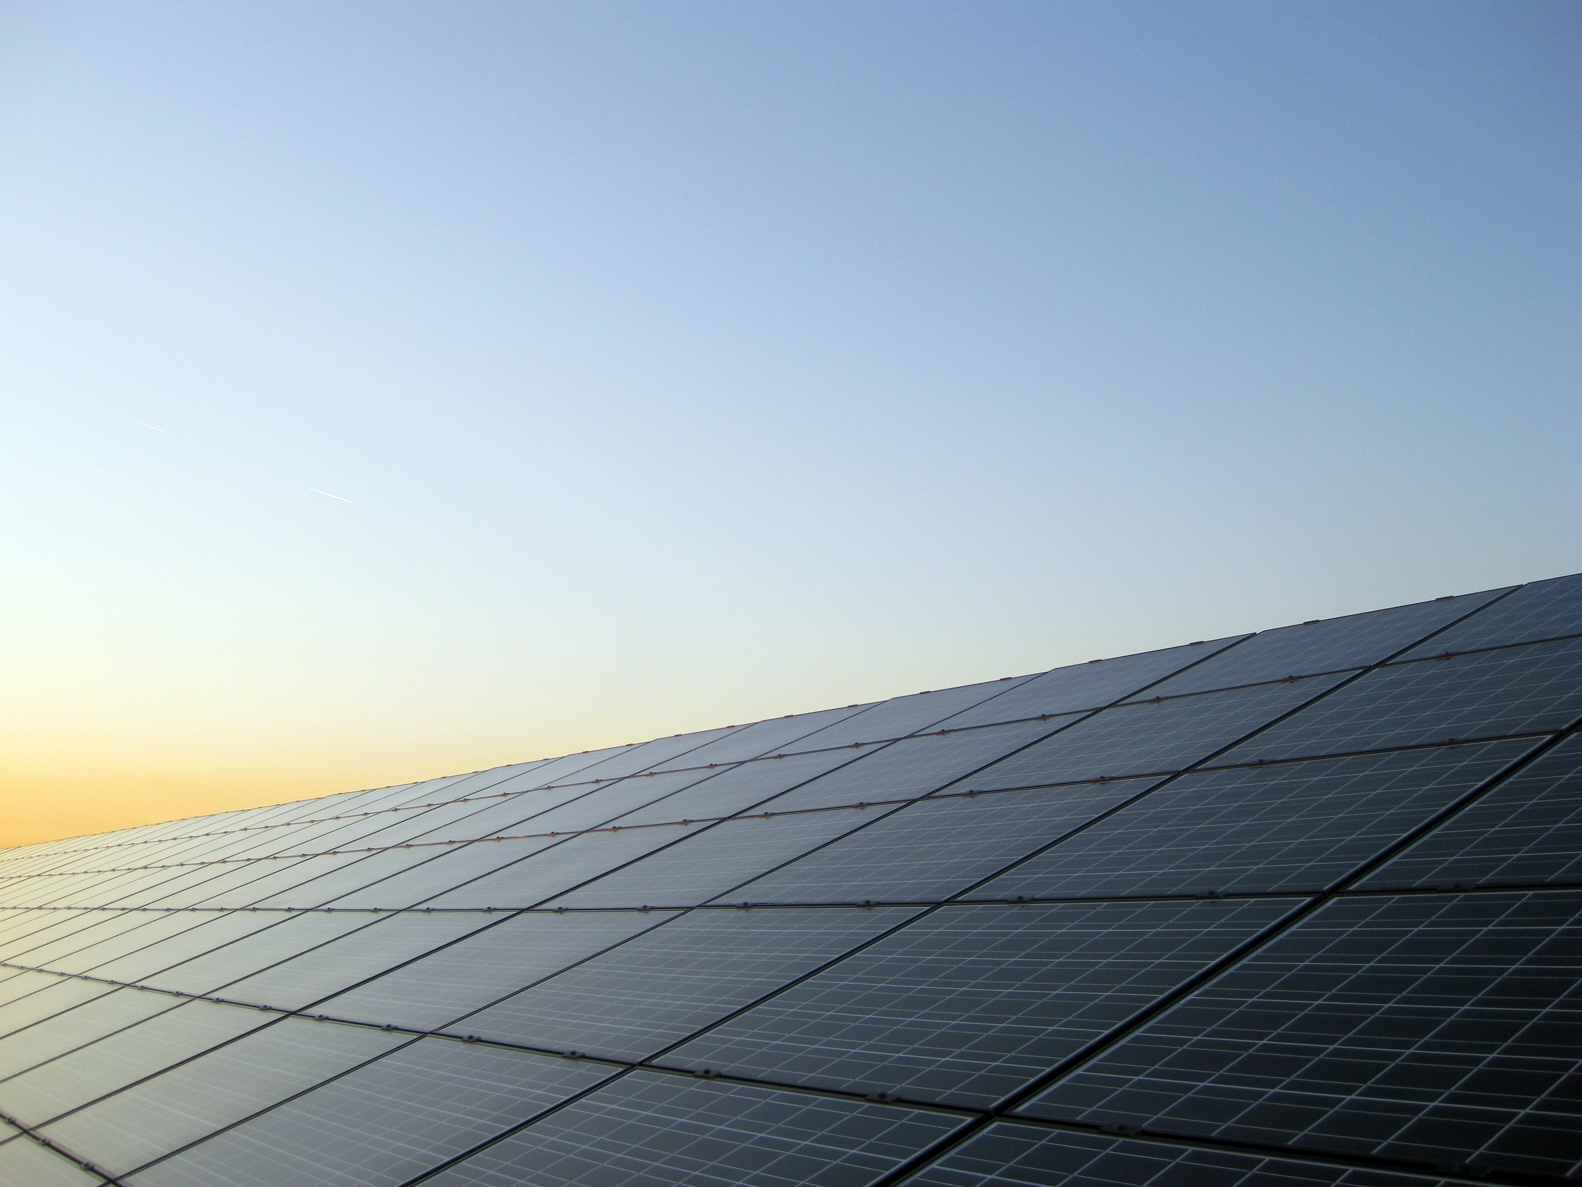 Solar panel stocks, news and analysis of alternative energy sources